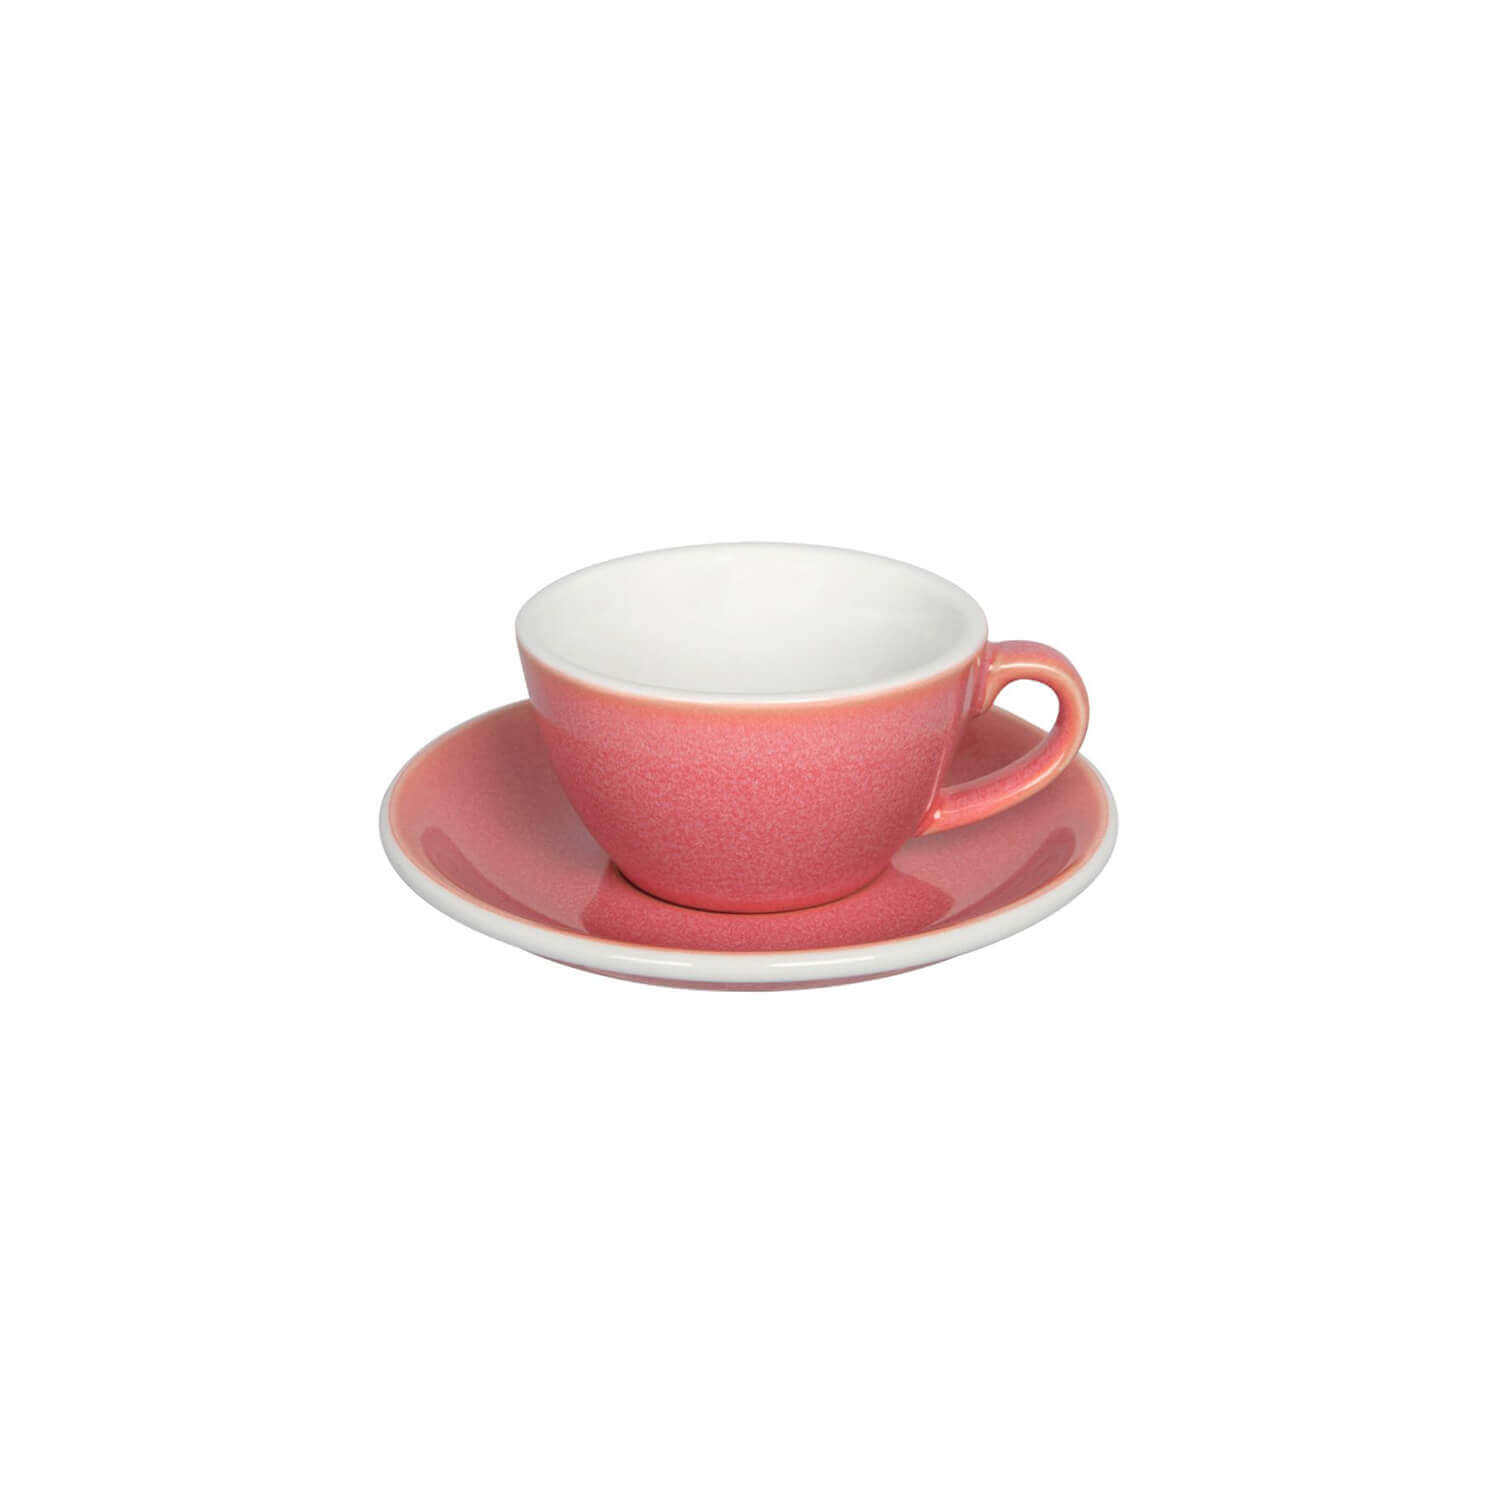 Loveramics - Egg - Flat White Cup - Berry